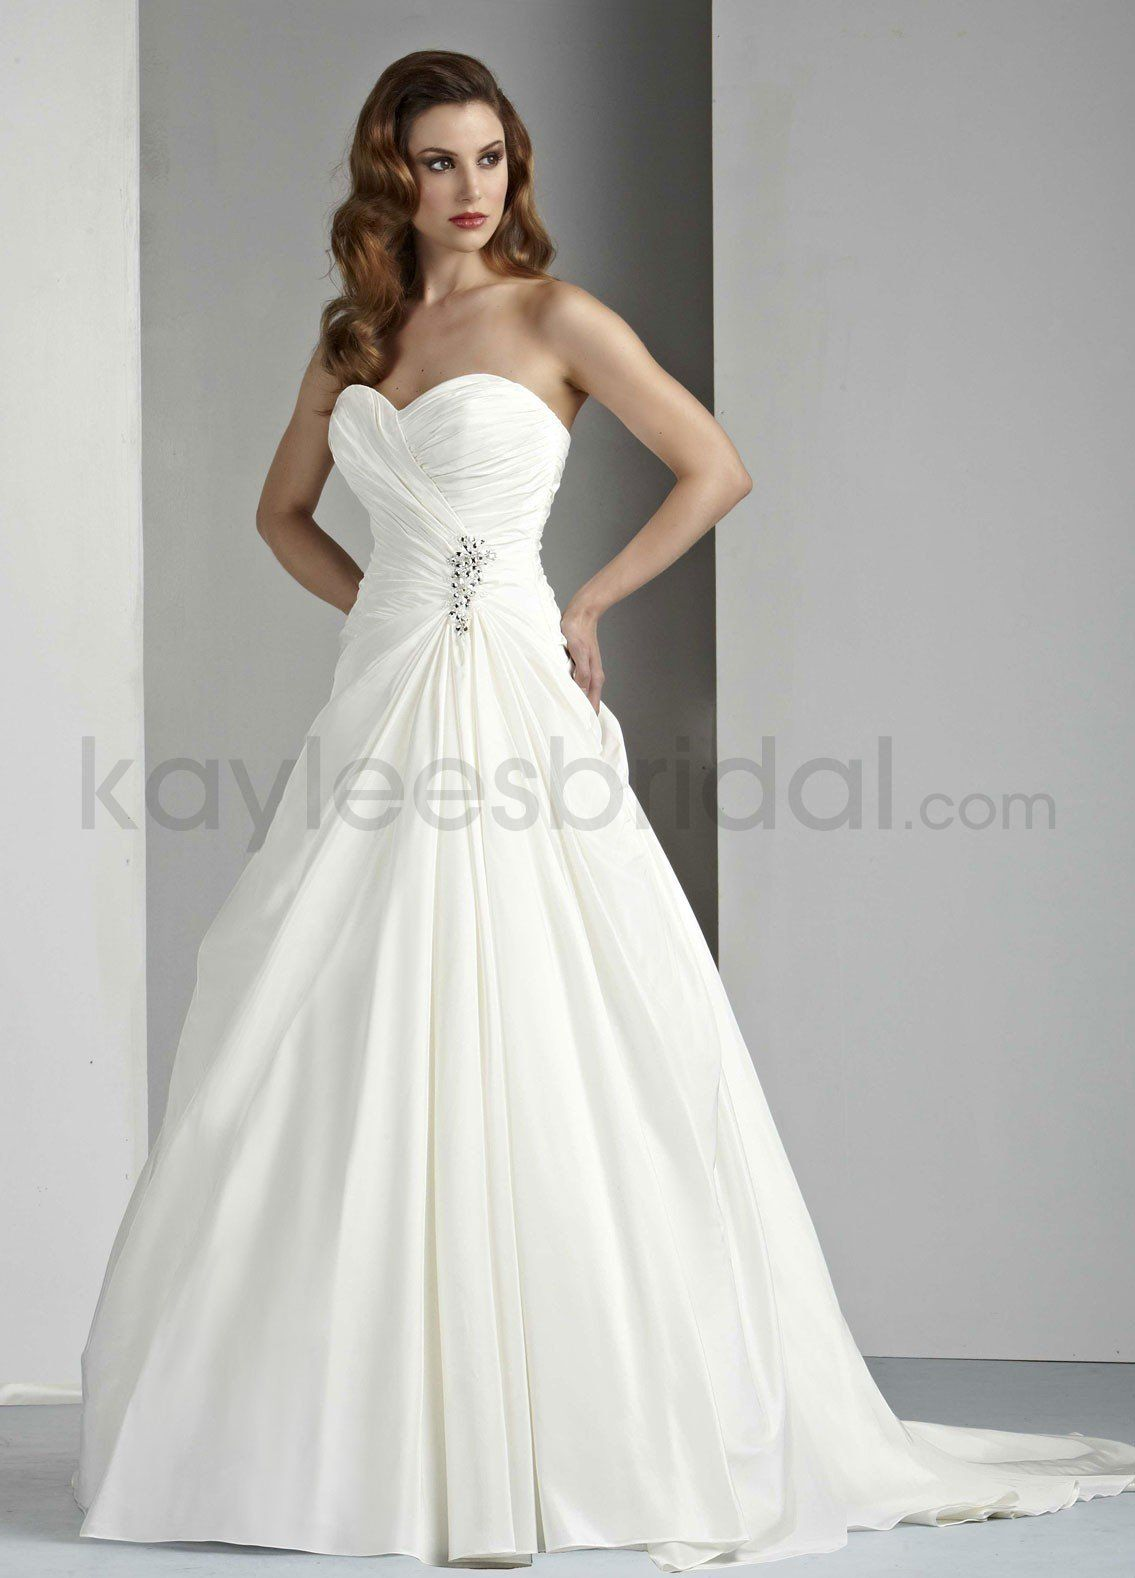 Bodice wedding dress  Wedding Dresses Sweetheart Neckline  Everything but the groom